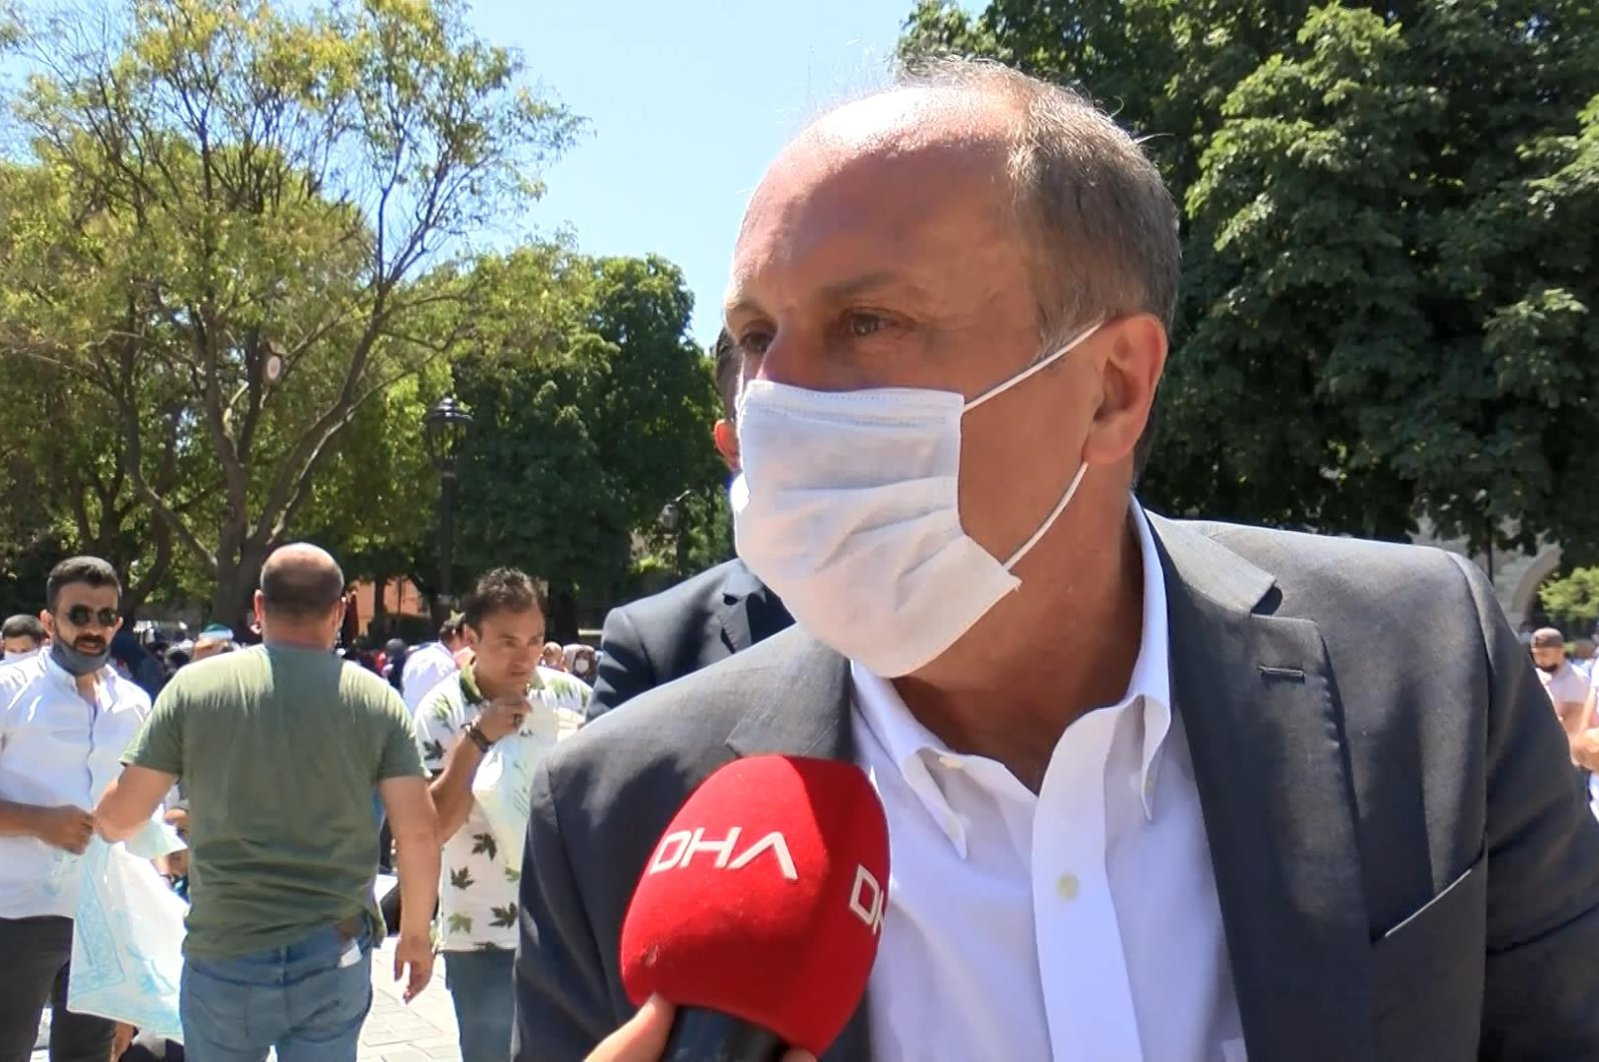 CHP's former deputy Ince speaks to reporters after a Friday prayer in the square near the Hagia Sophia Grand Mosque, Istanbul, July 24, 2020. (DHA Photo)